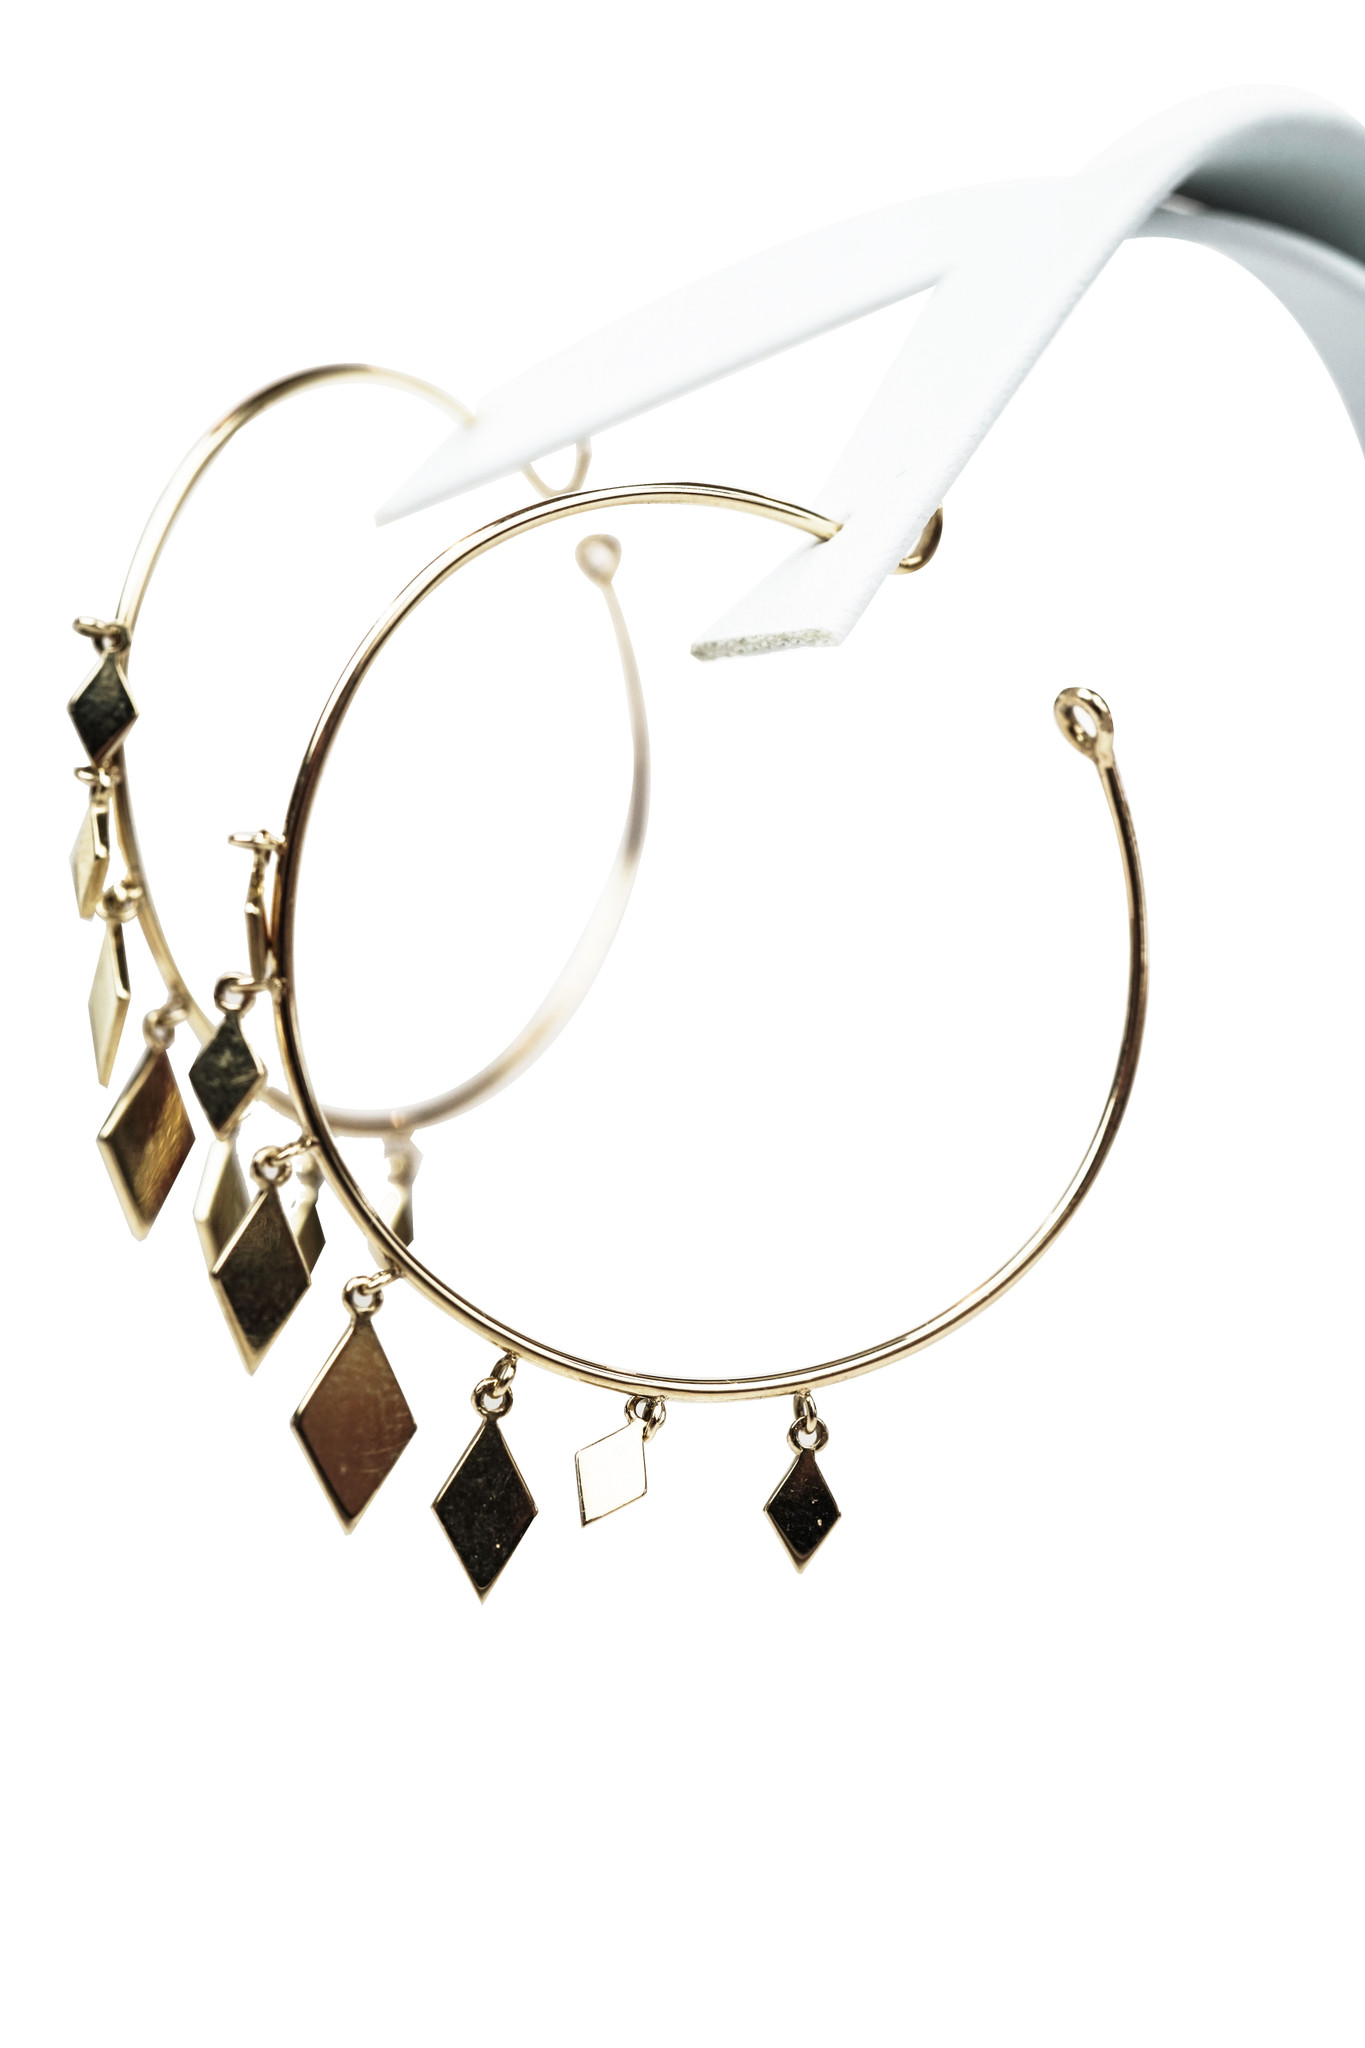 18k Yellow-Gold Earrings S 1.56 Inches L